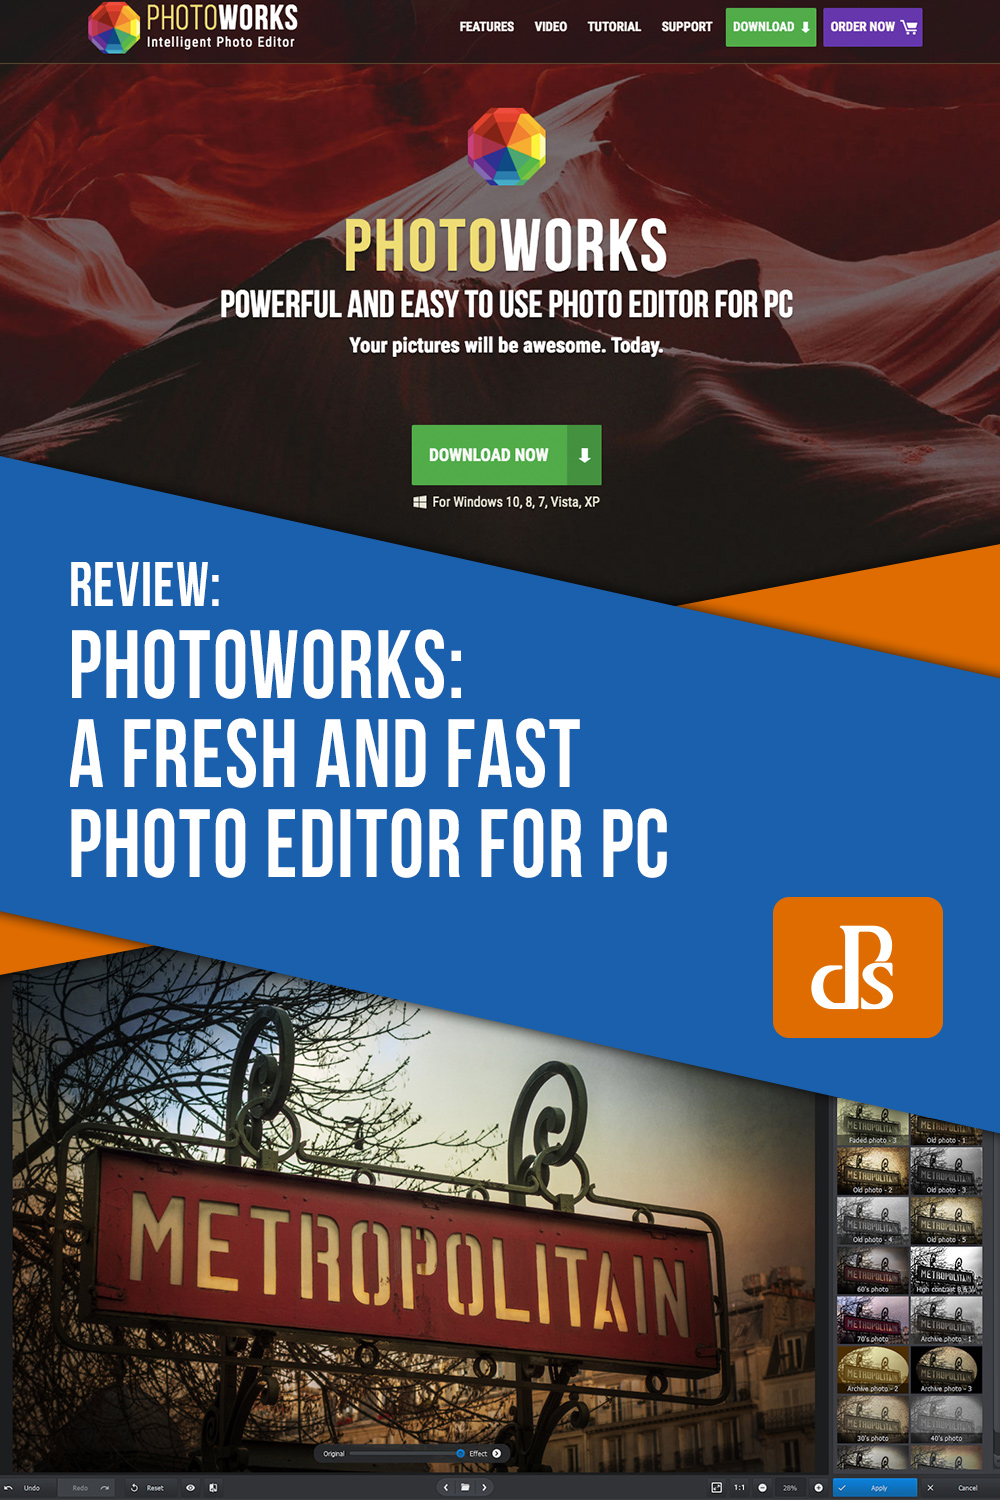 dps-photoworks-photo-editing-for-pc